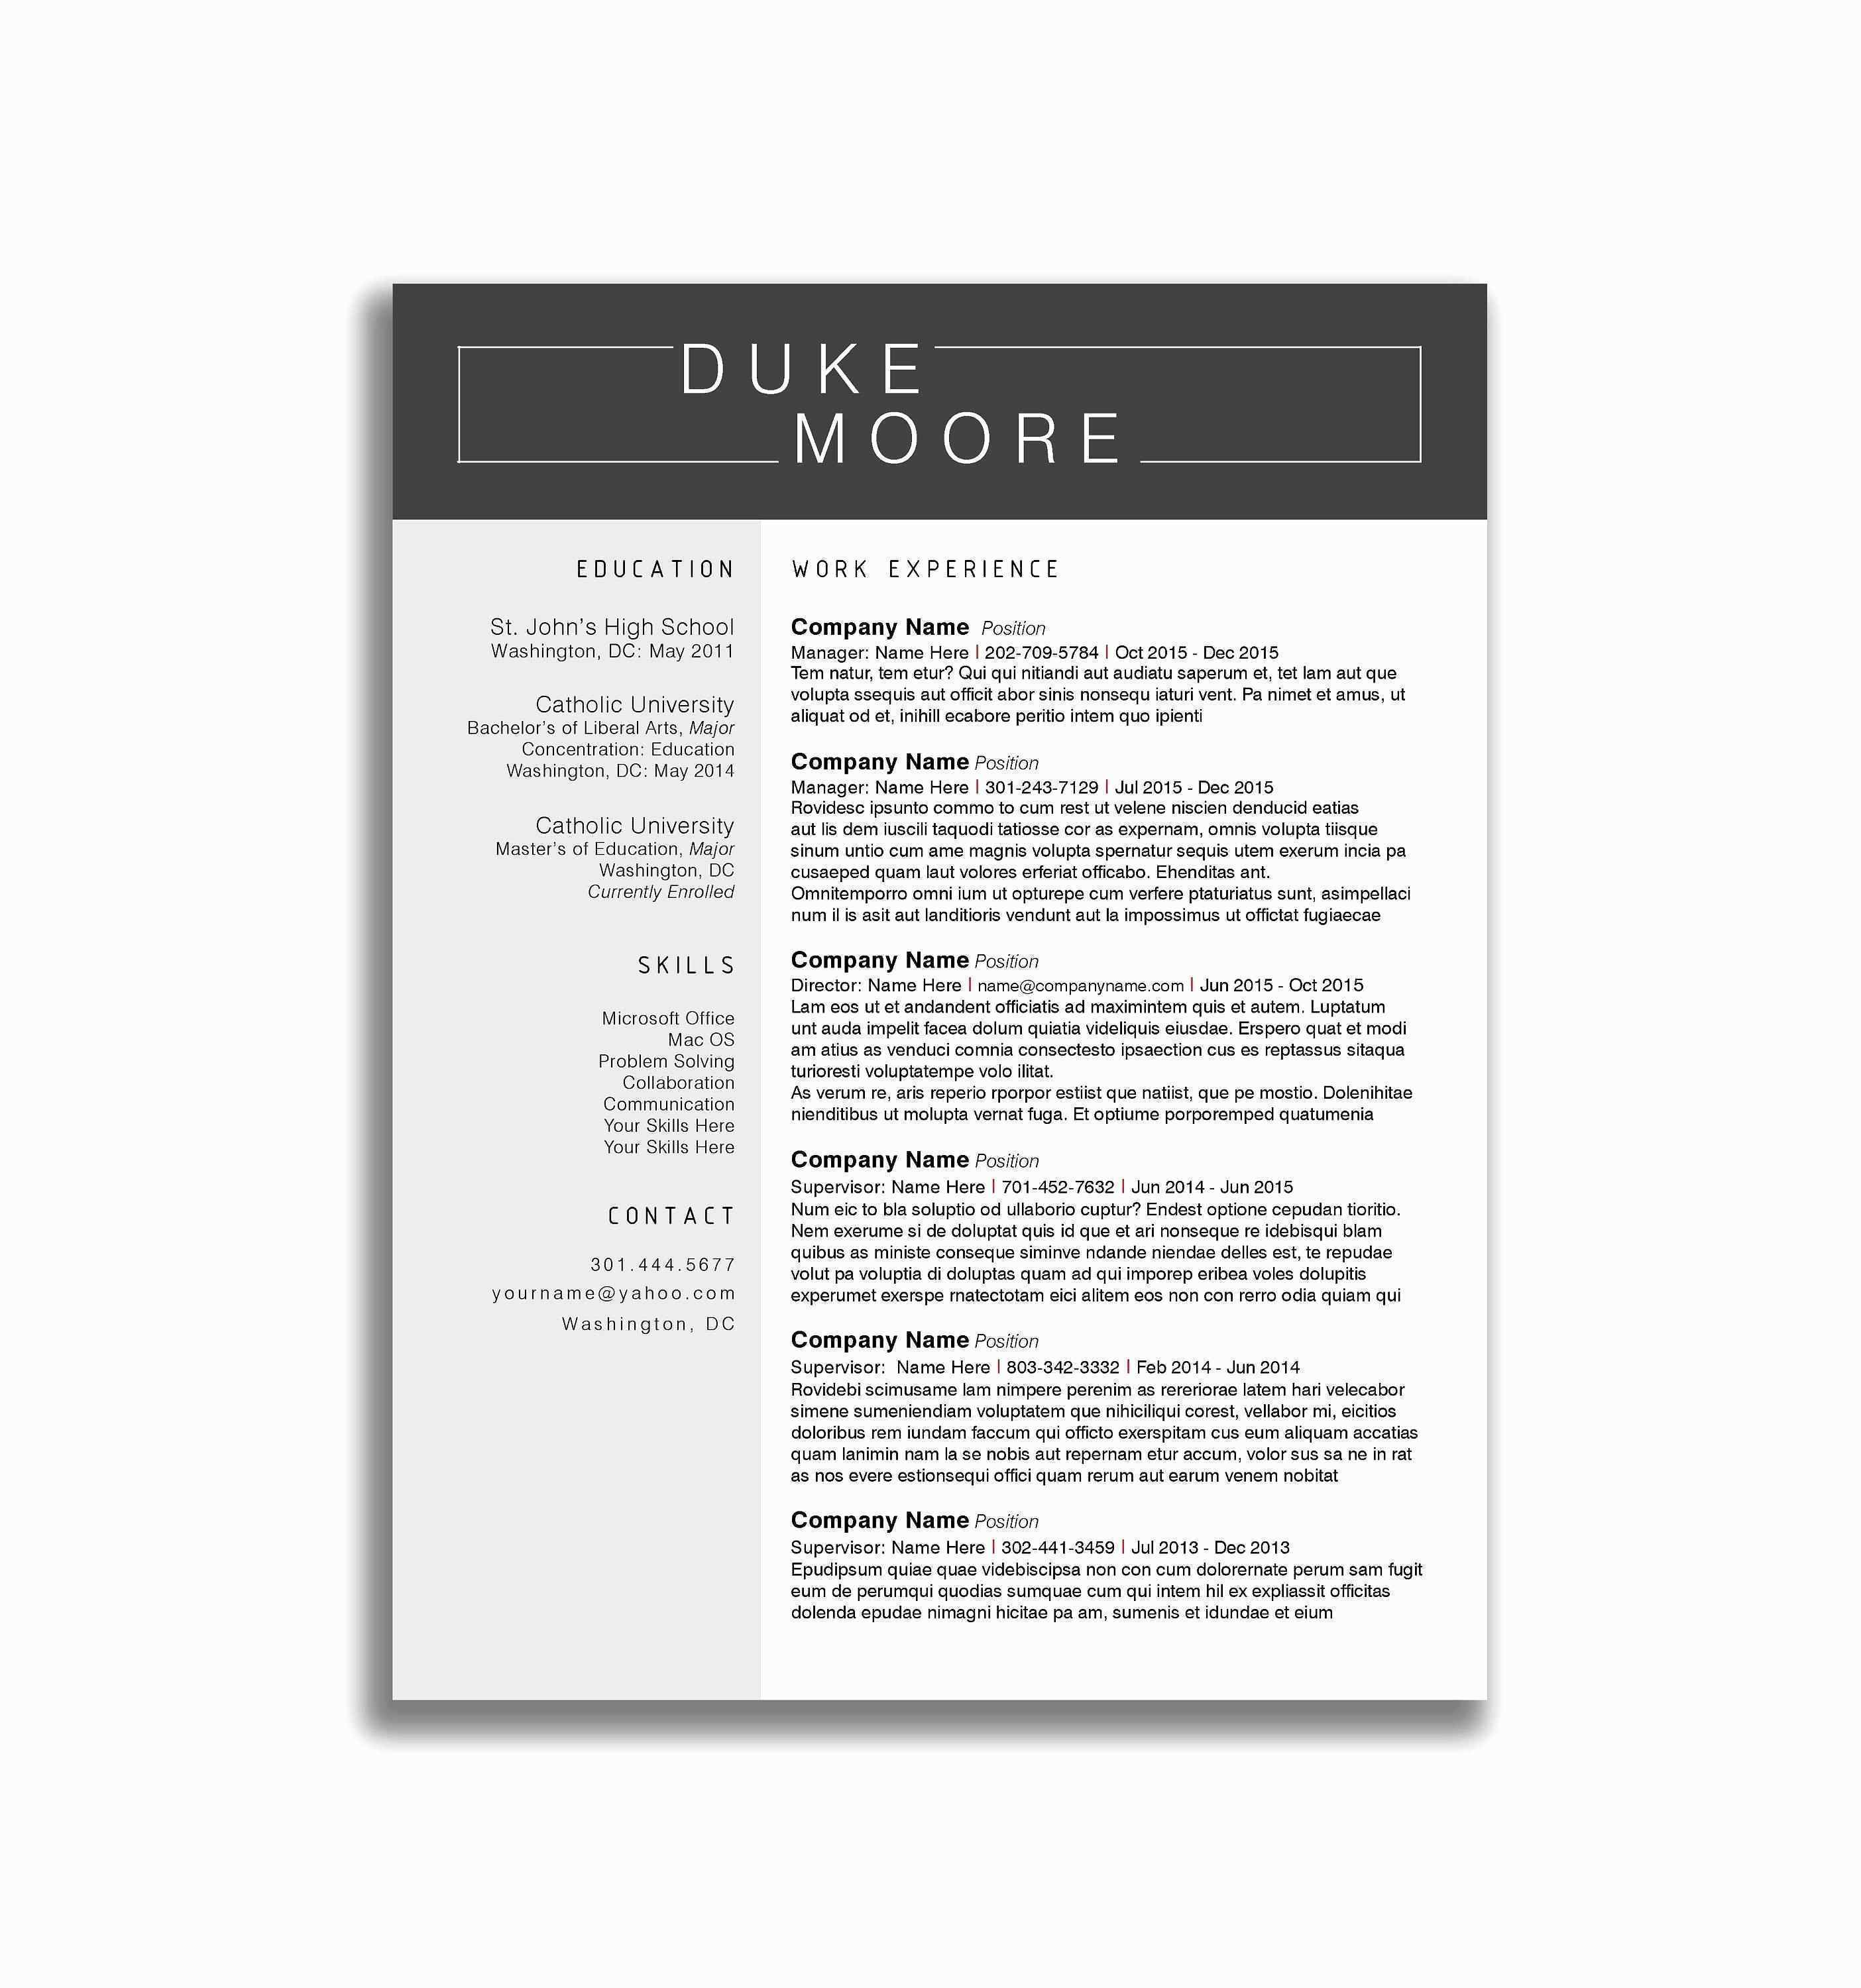 Resume Template Purdue - Cover Letter for Nurse Practitioner Job Awesome Cover Letter for